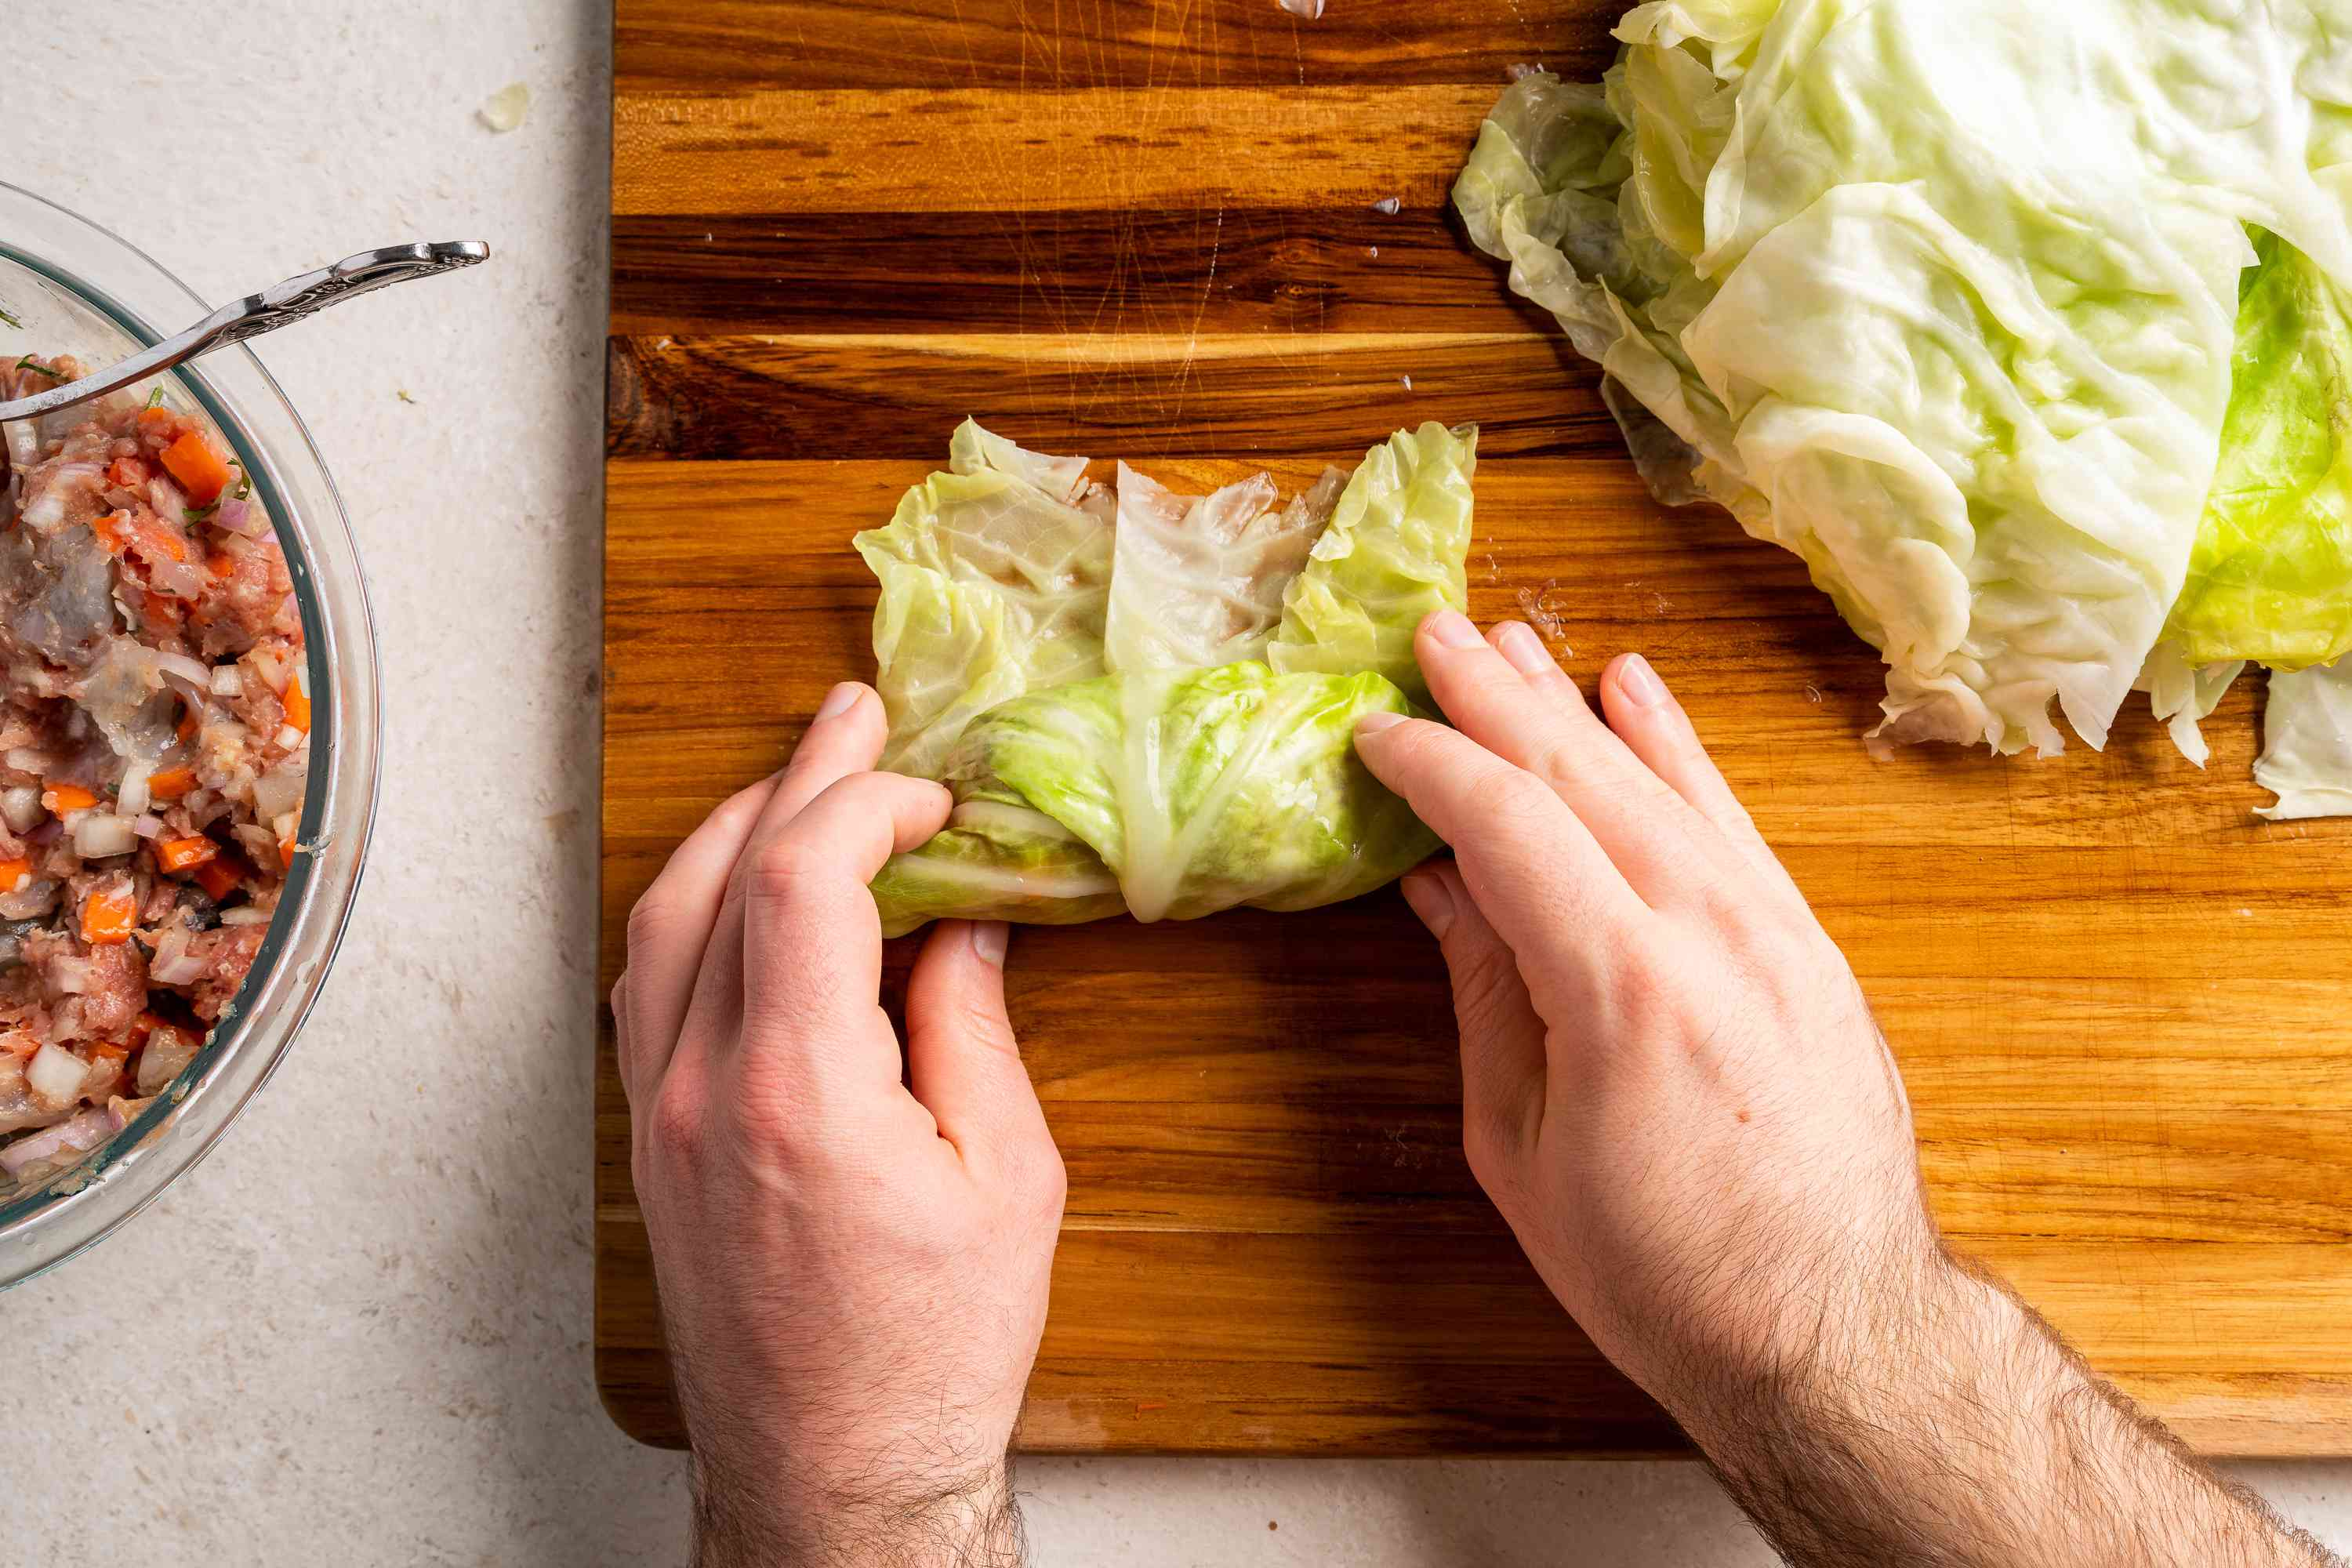 fold over the cabbage roll